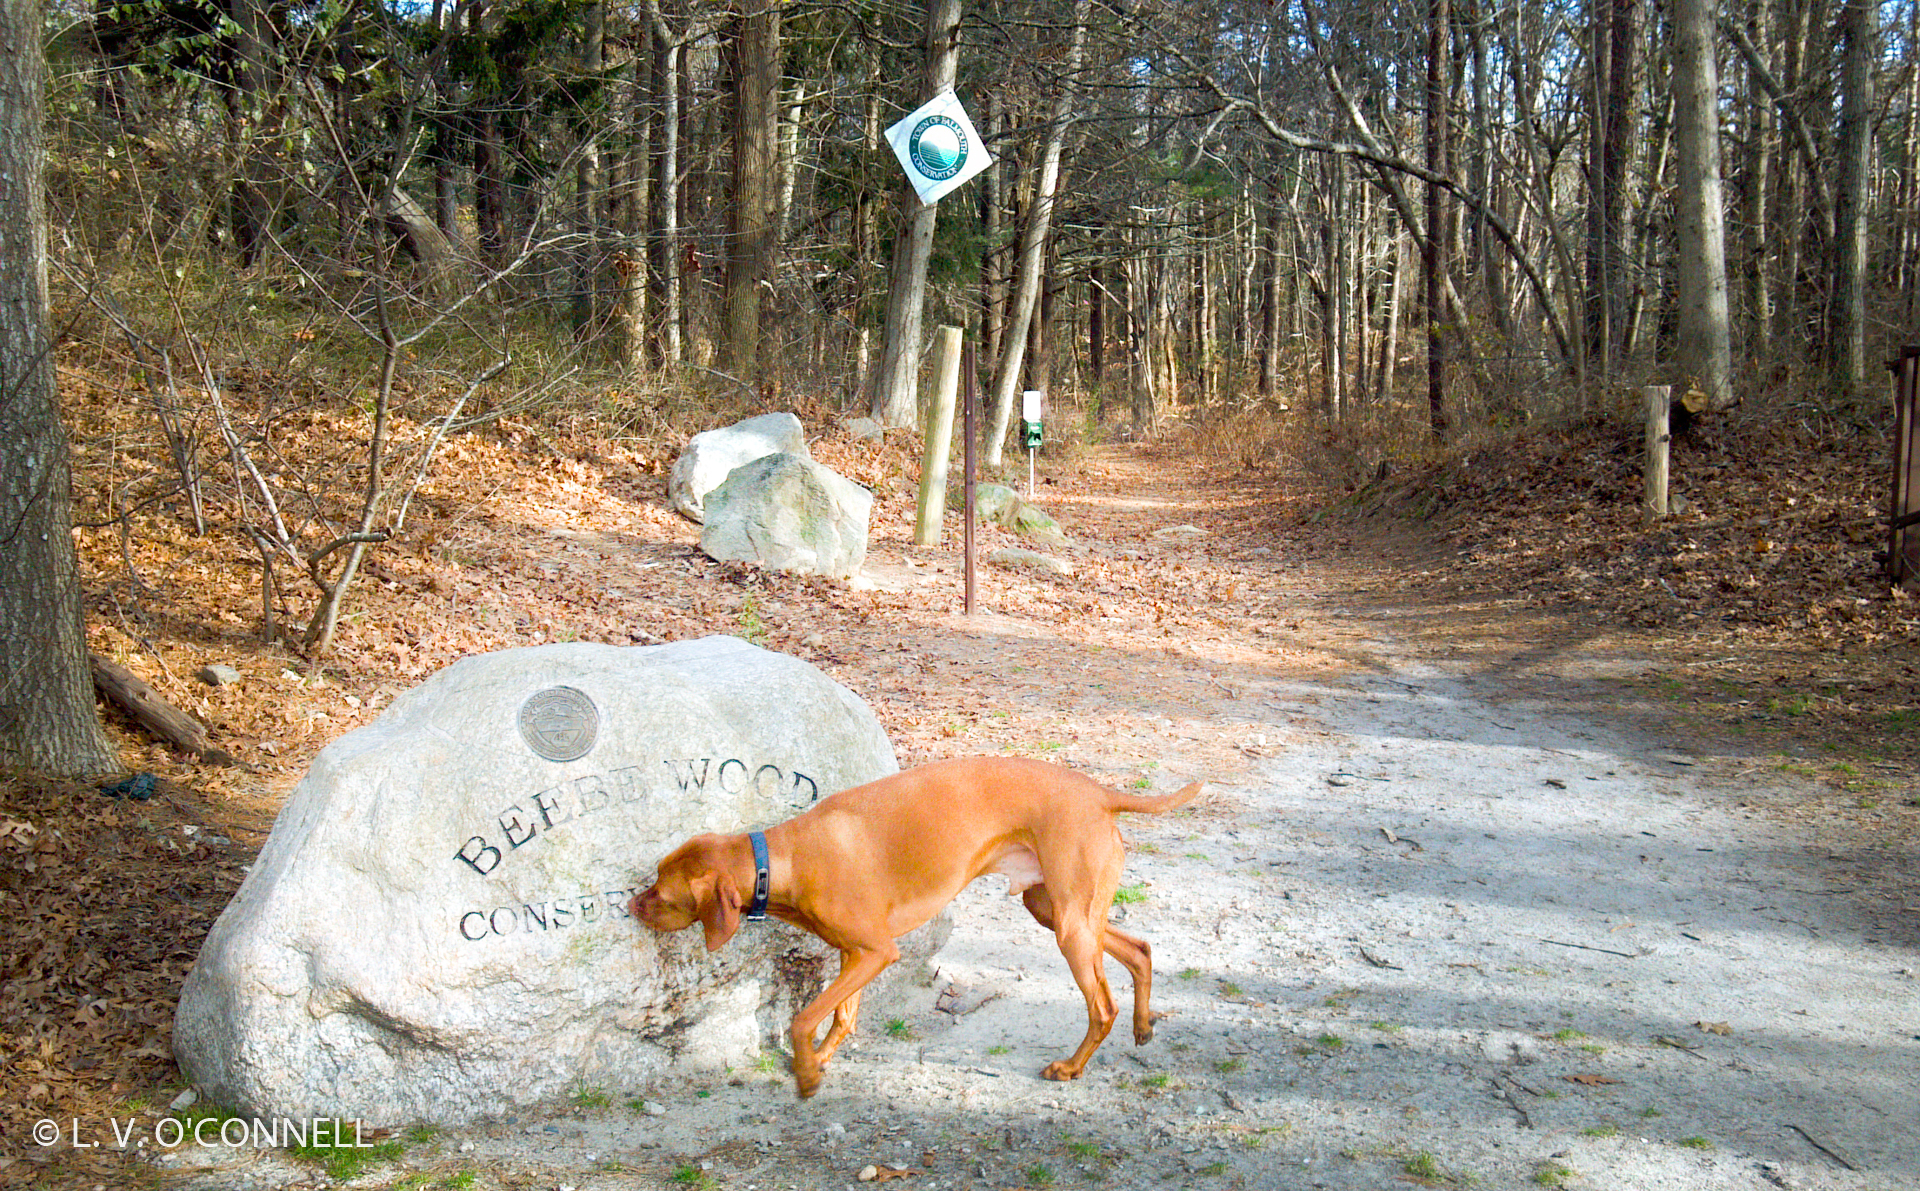 Beebe Woods Conservancy nature trails.